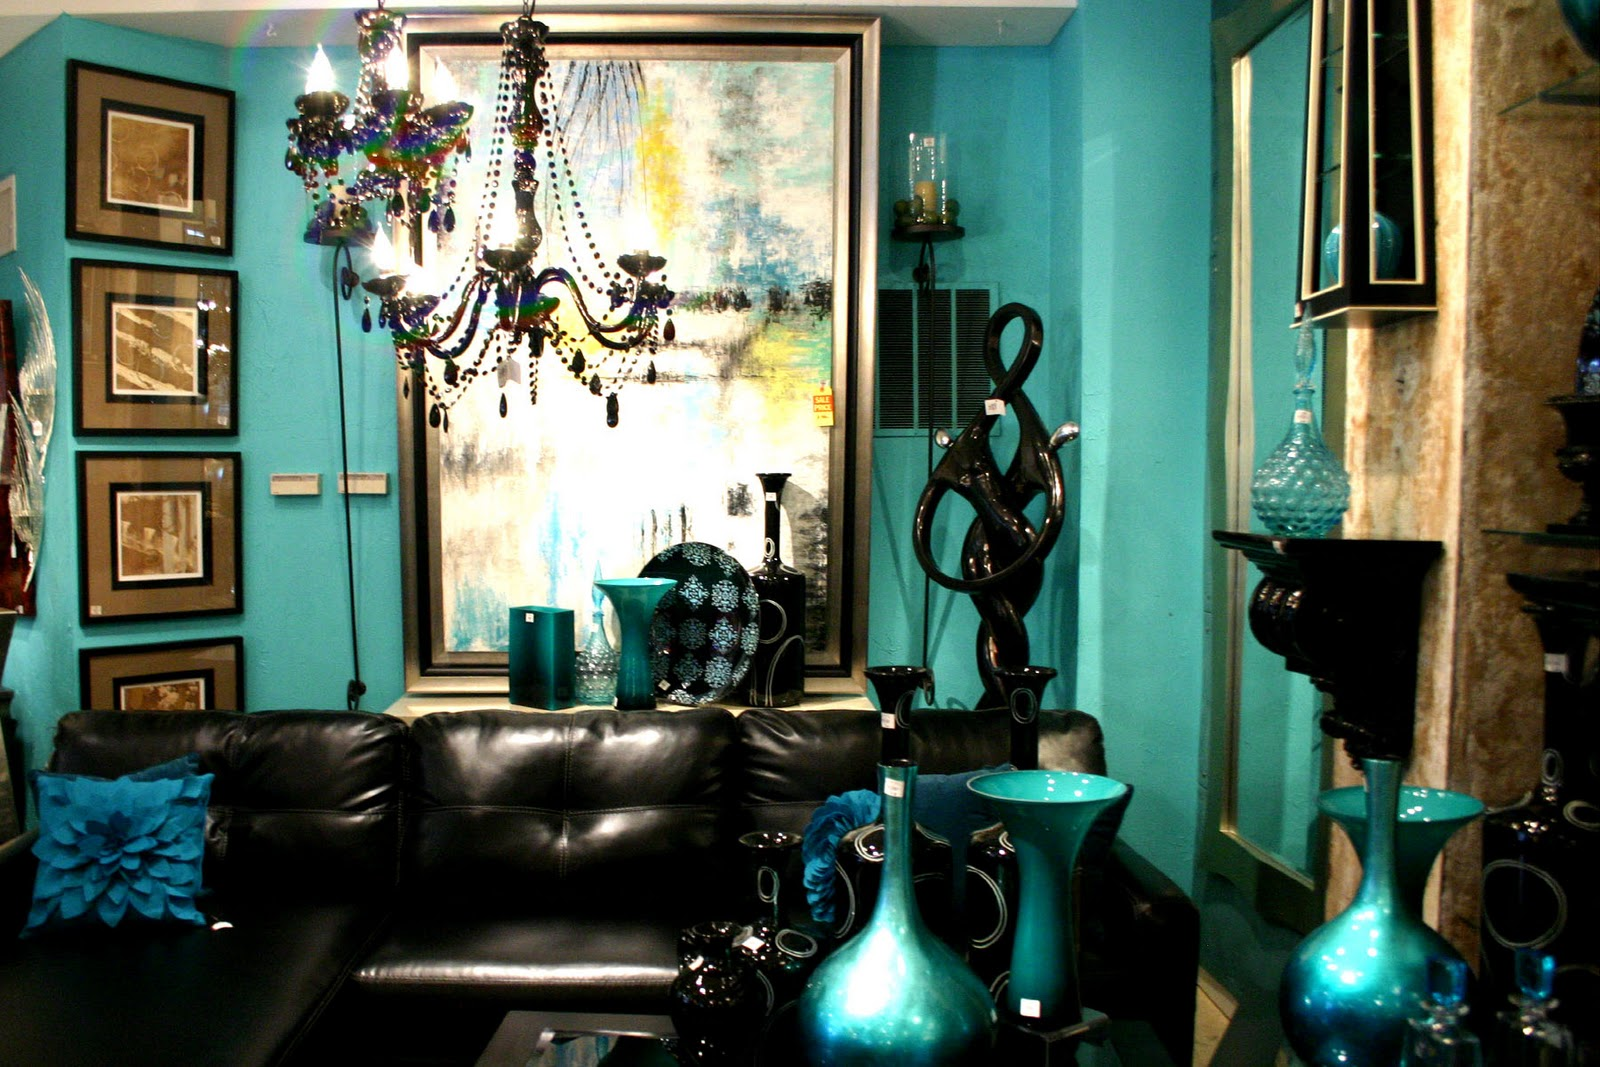 Classic Living Room Decor In Teal Color